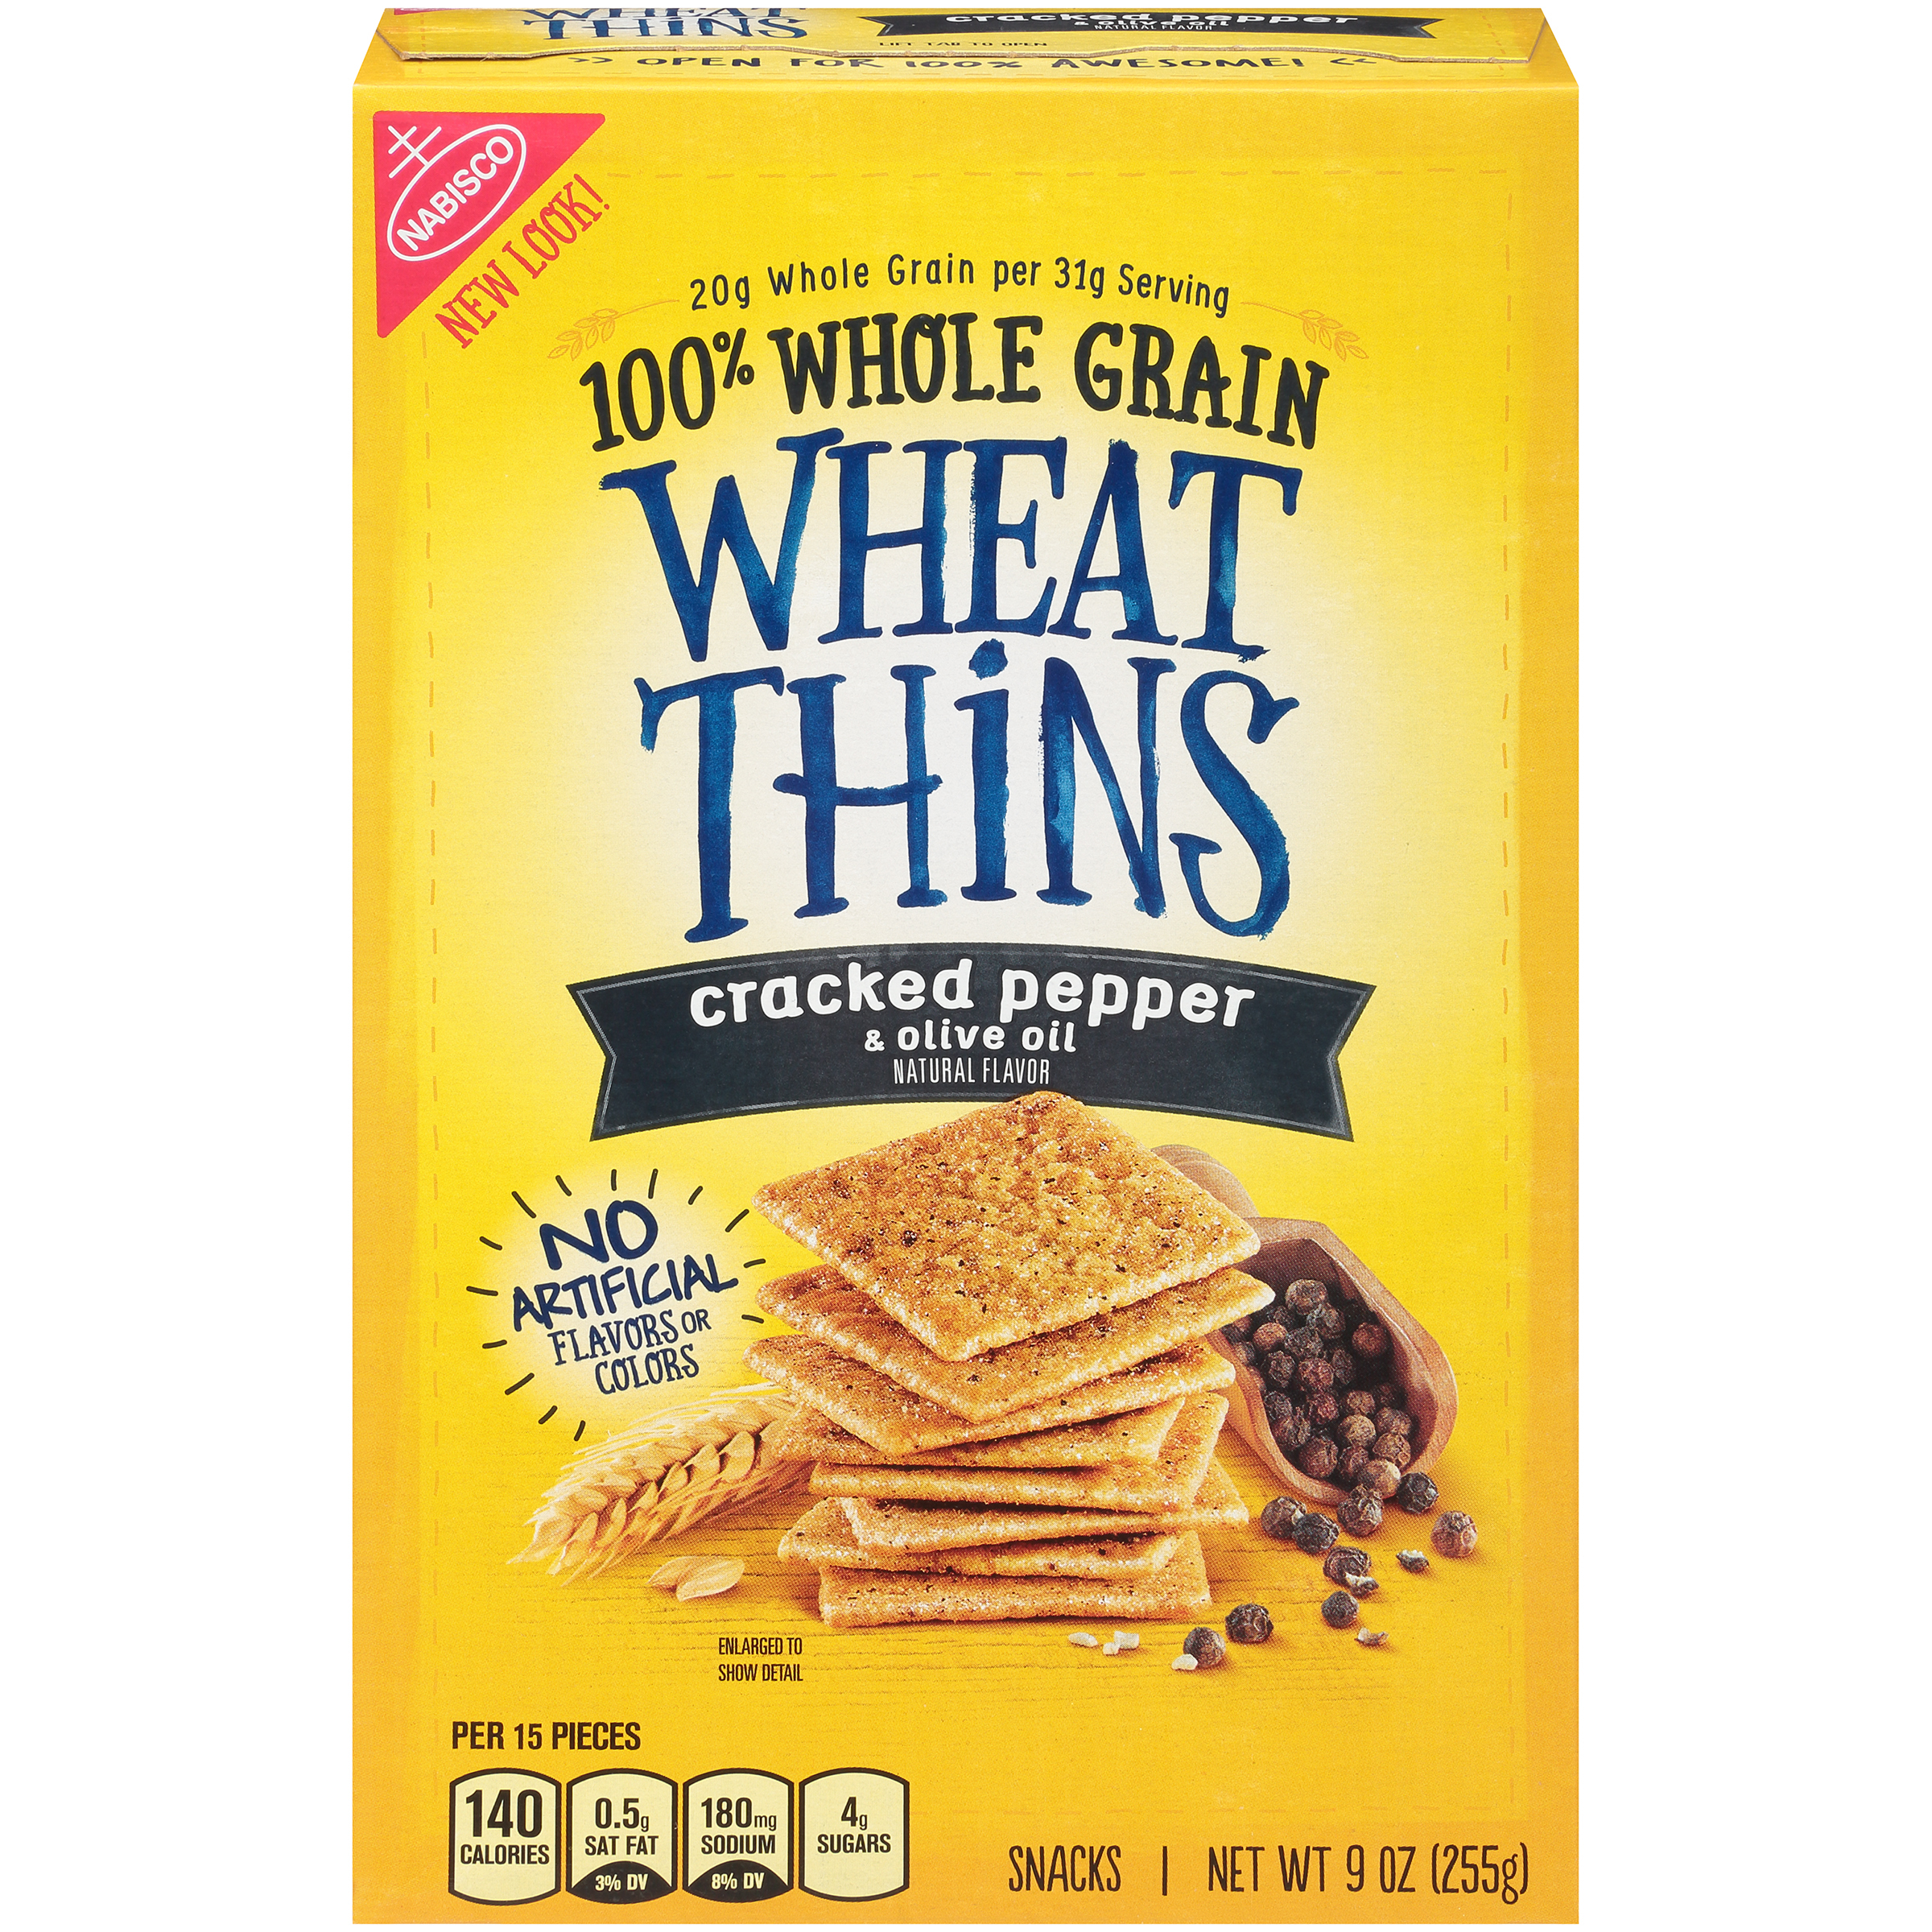 WHEAT THINS Cracked Pepper And Olive Oil Crackers 9 oz